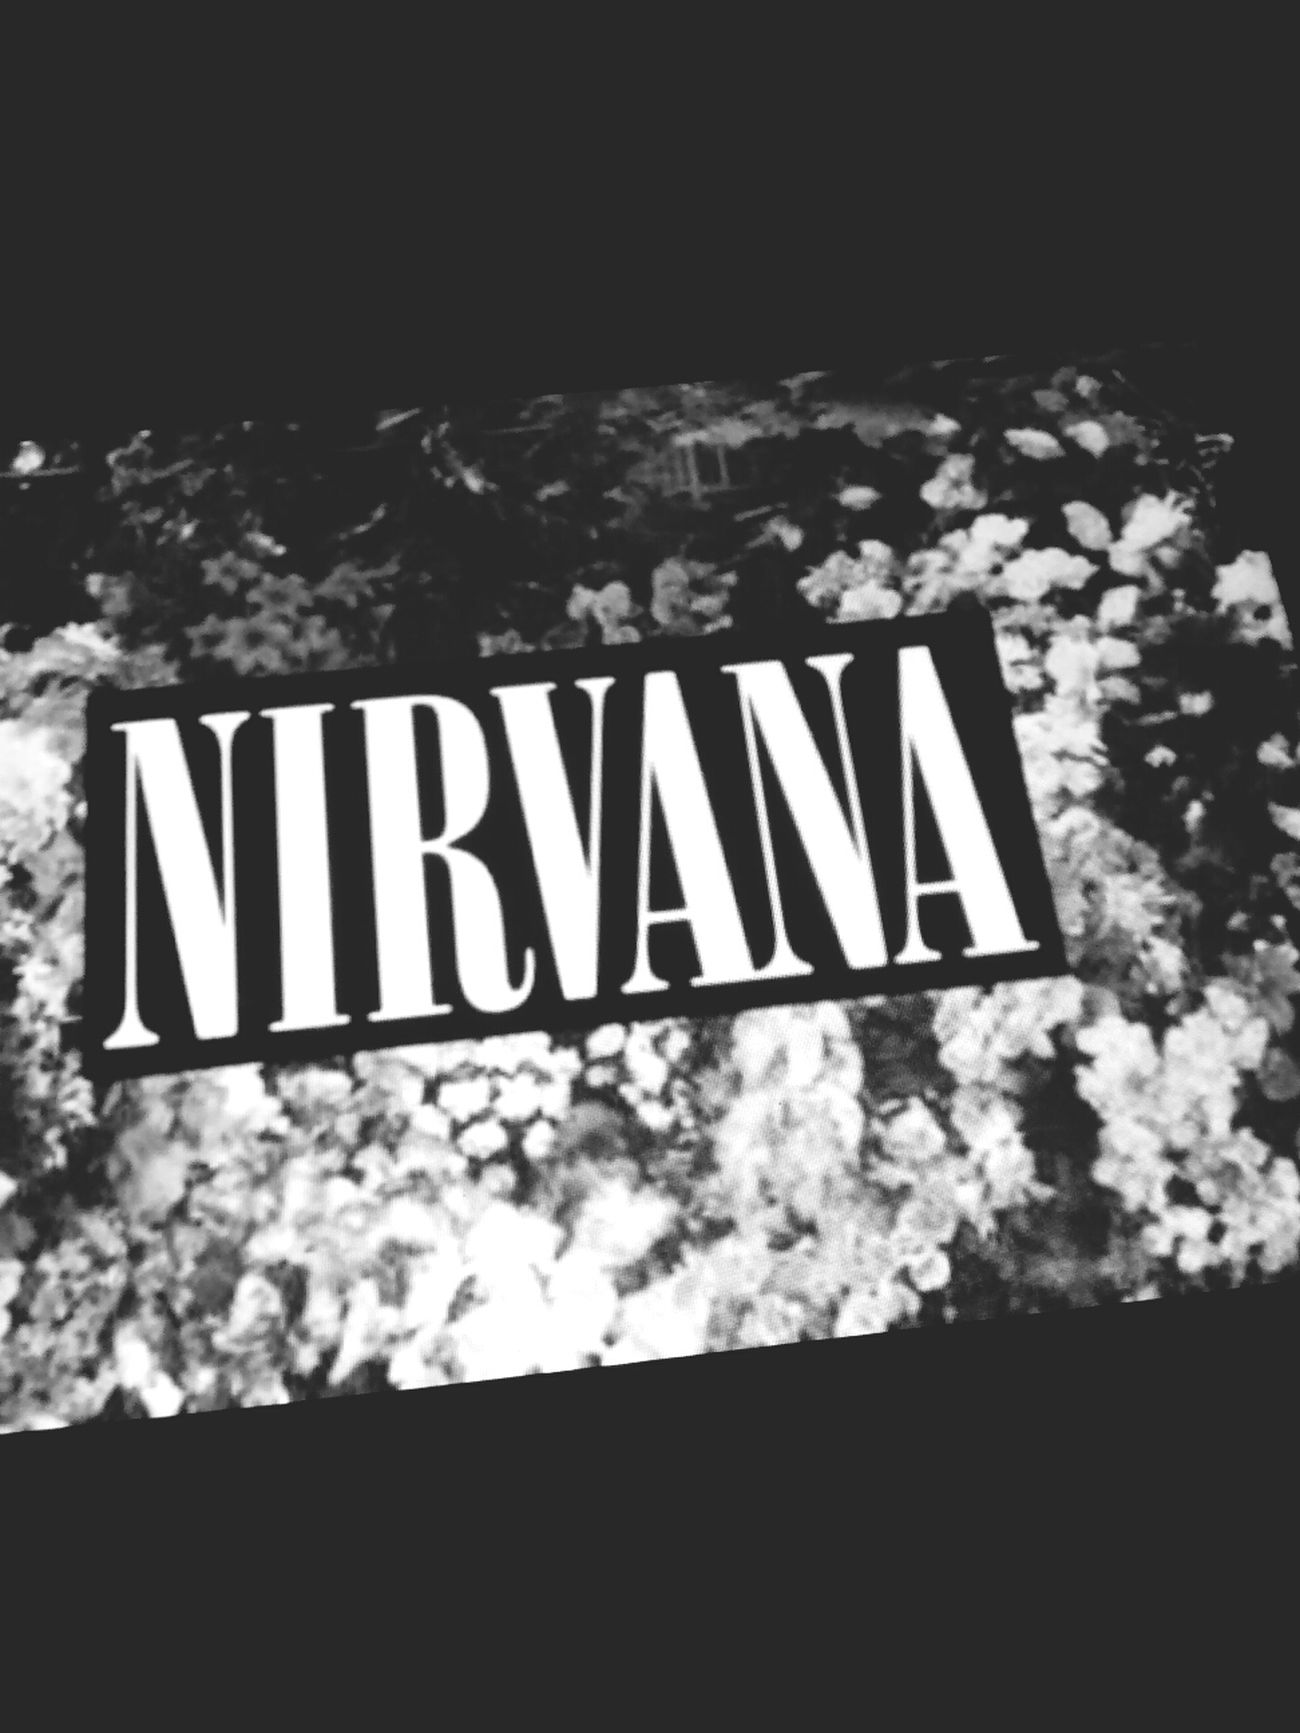 I'm not gonna crack Nirvana Band Grunge Lithium